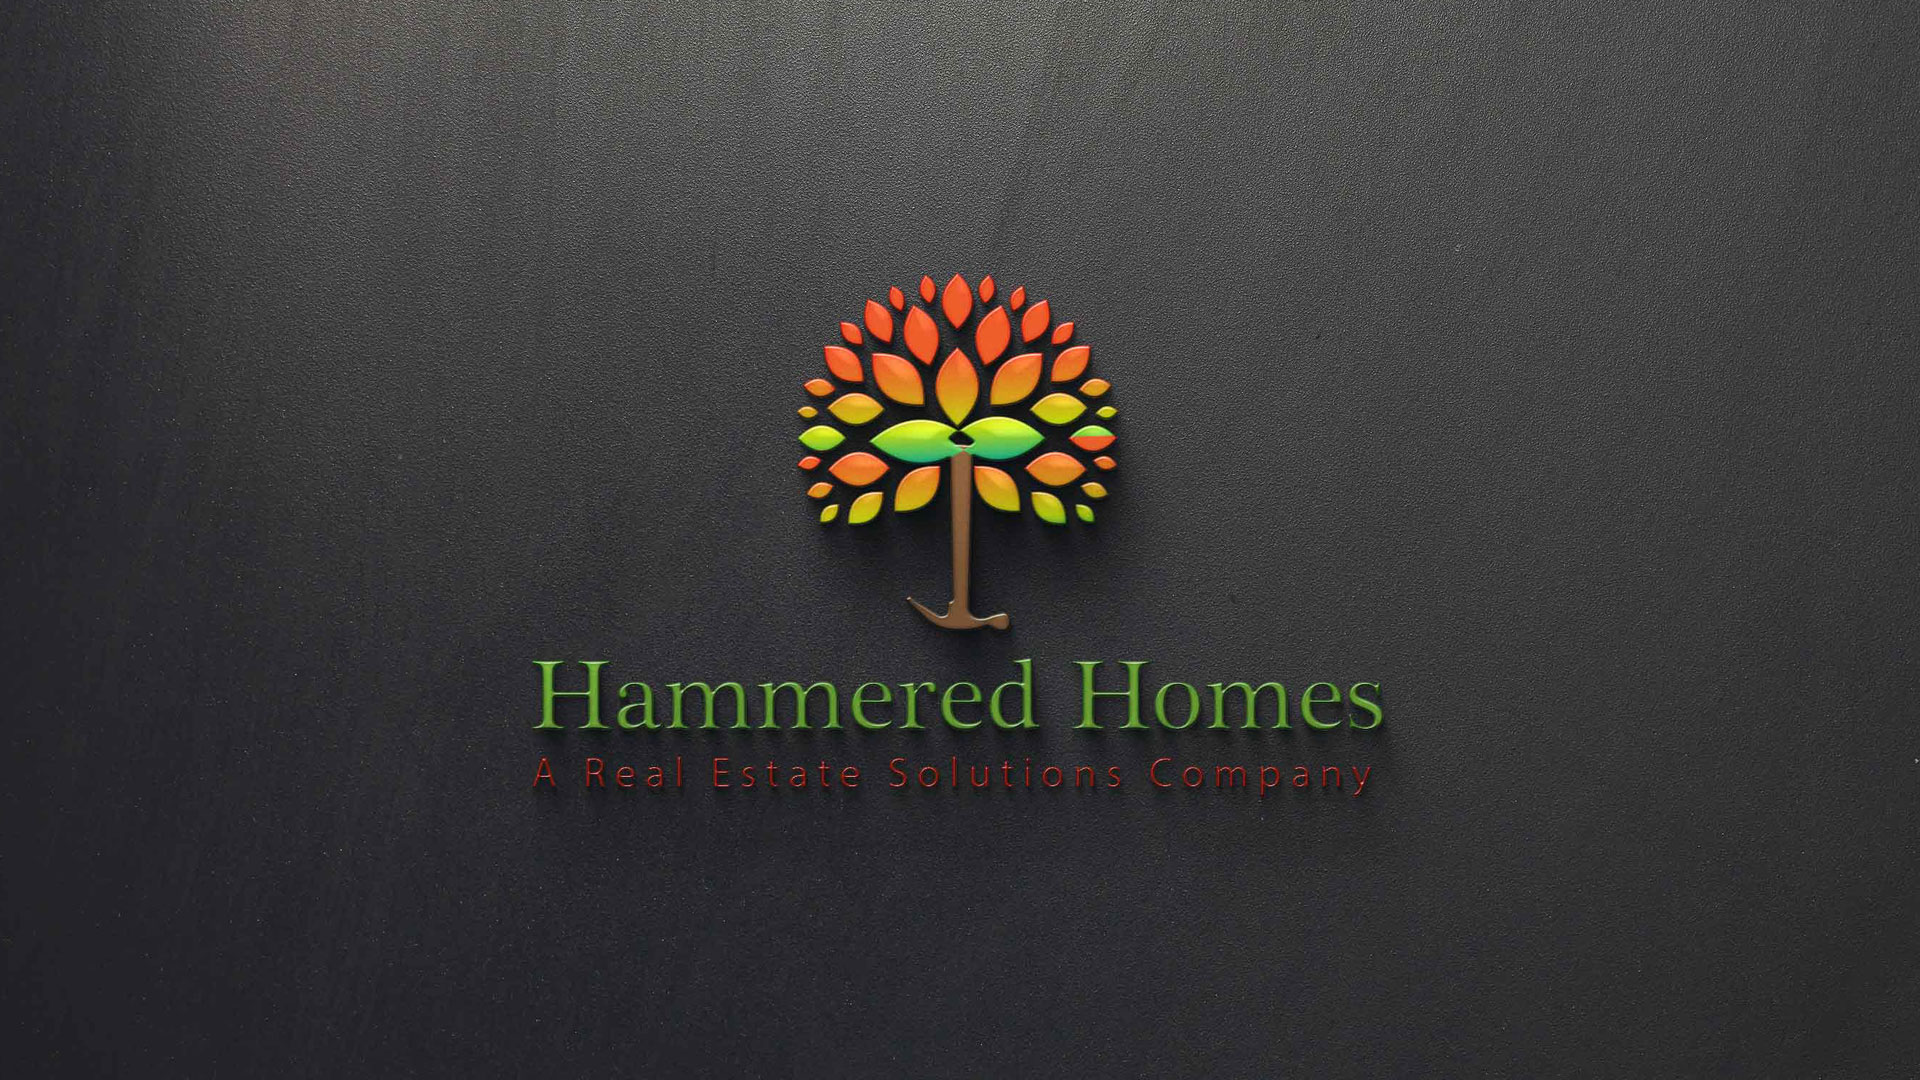 Hammered Homes, LLC